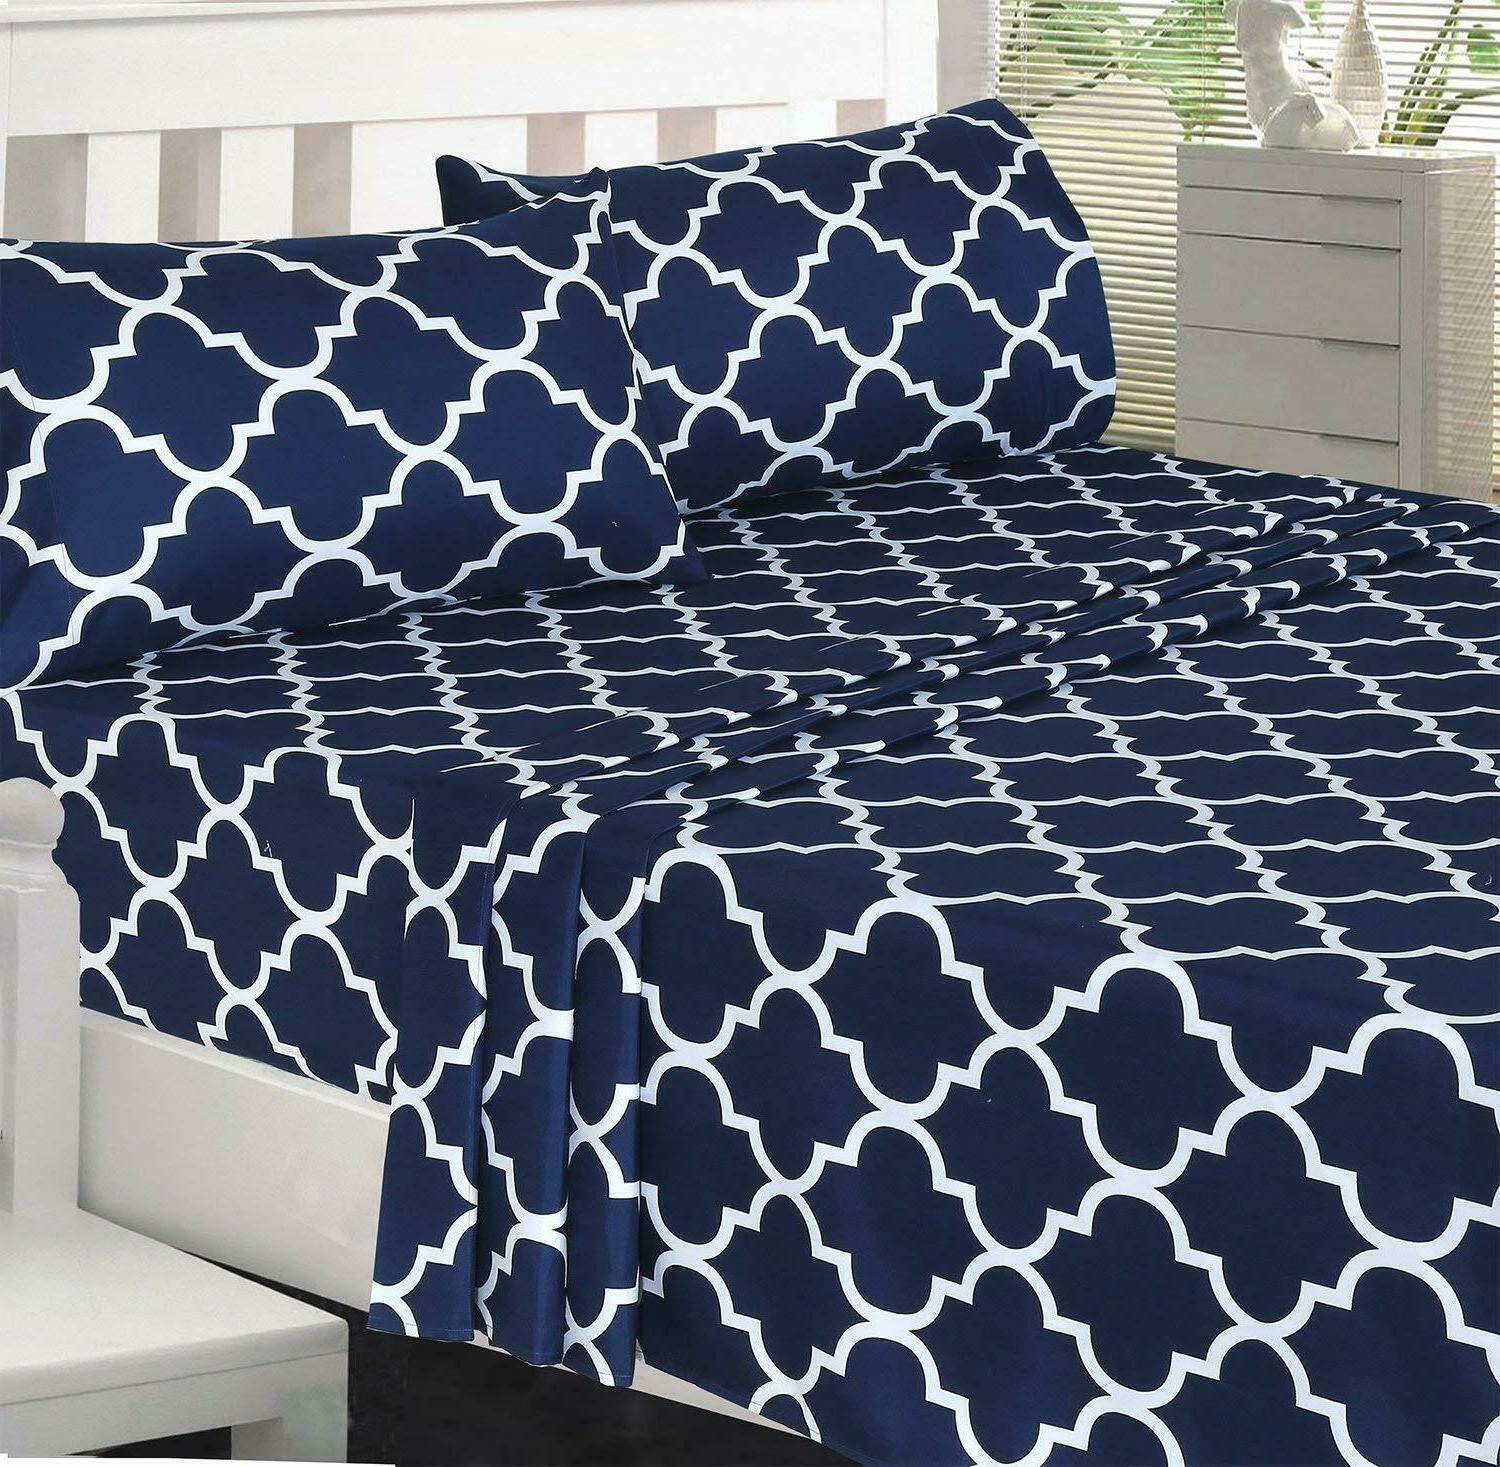 Bed Flat 1 Sheet 2 Pillow Utopia Bedding